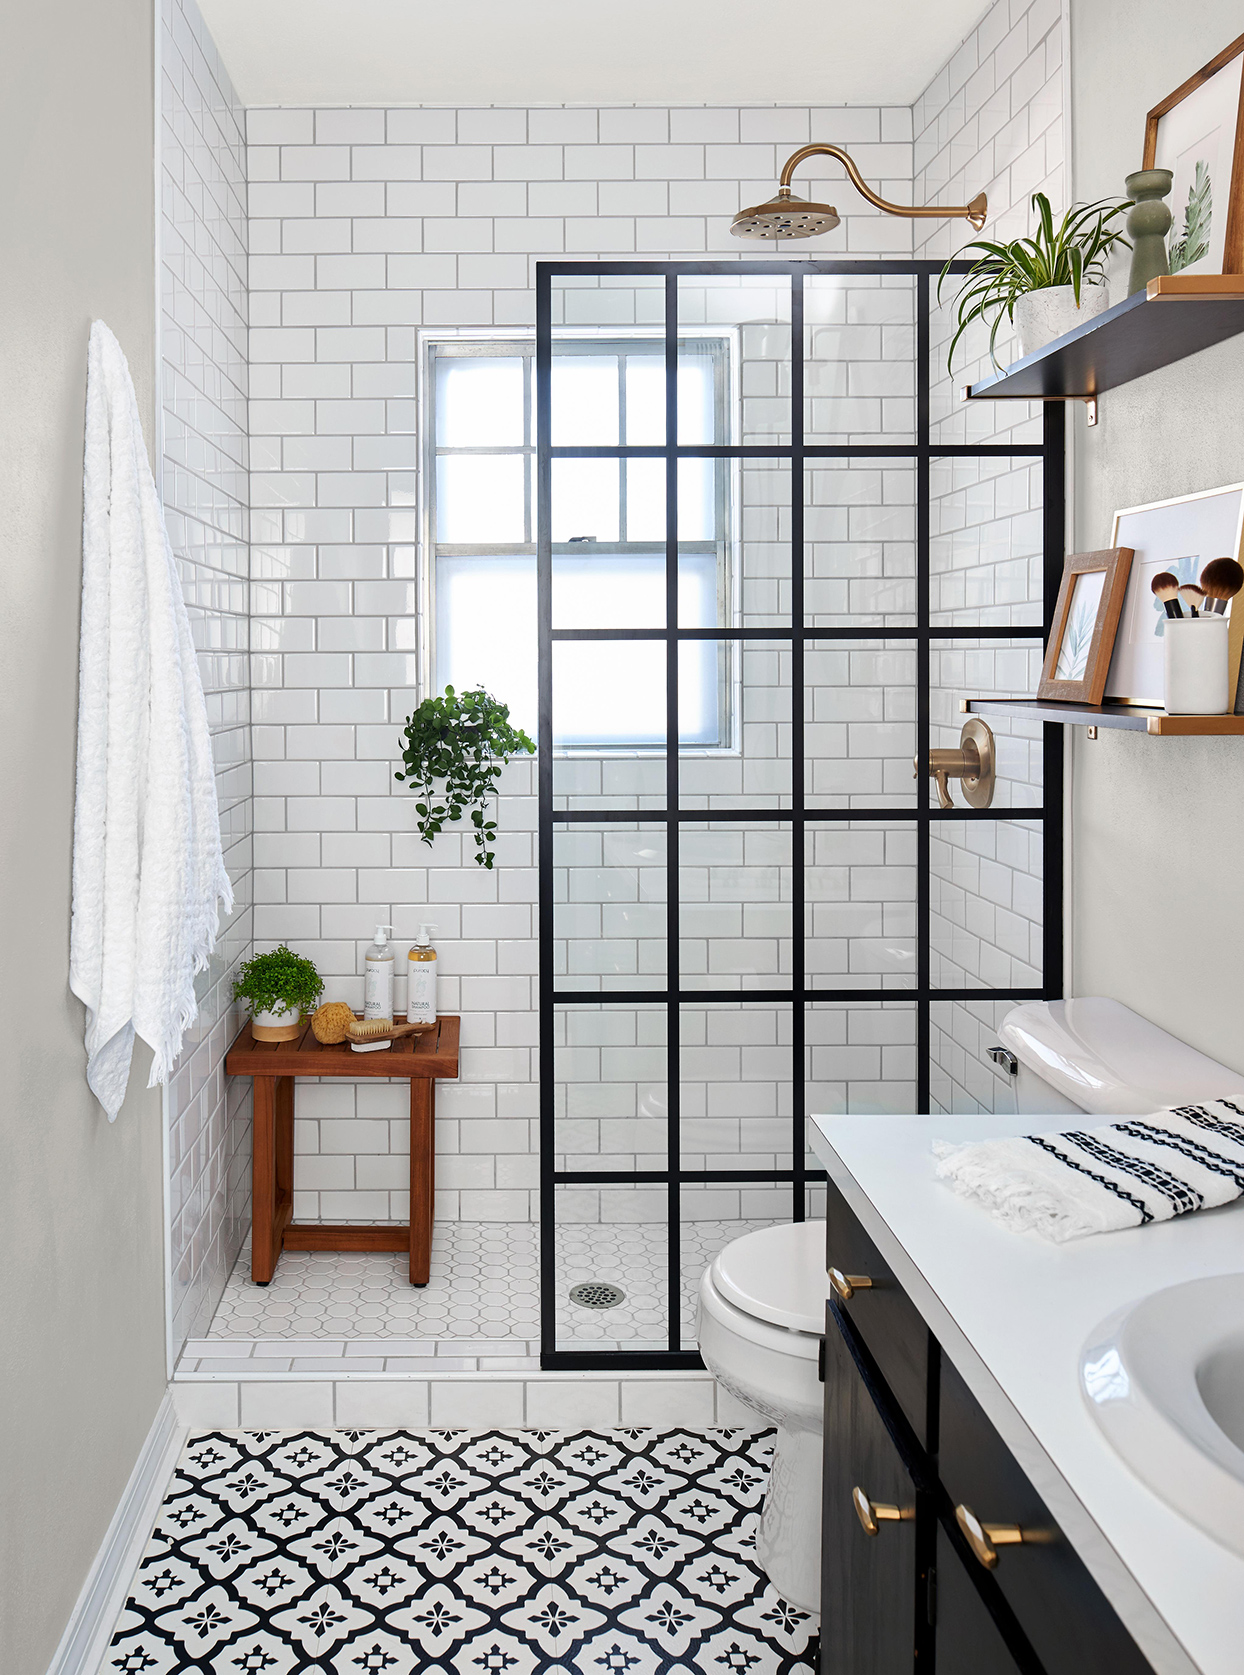 Before-and-After Small Bathroom Remodels That Showcase ... on Small Bathroom Ideas 2020 id=61550